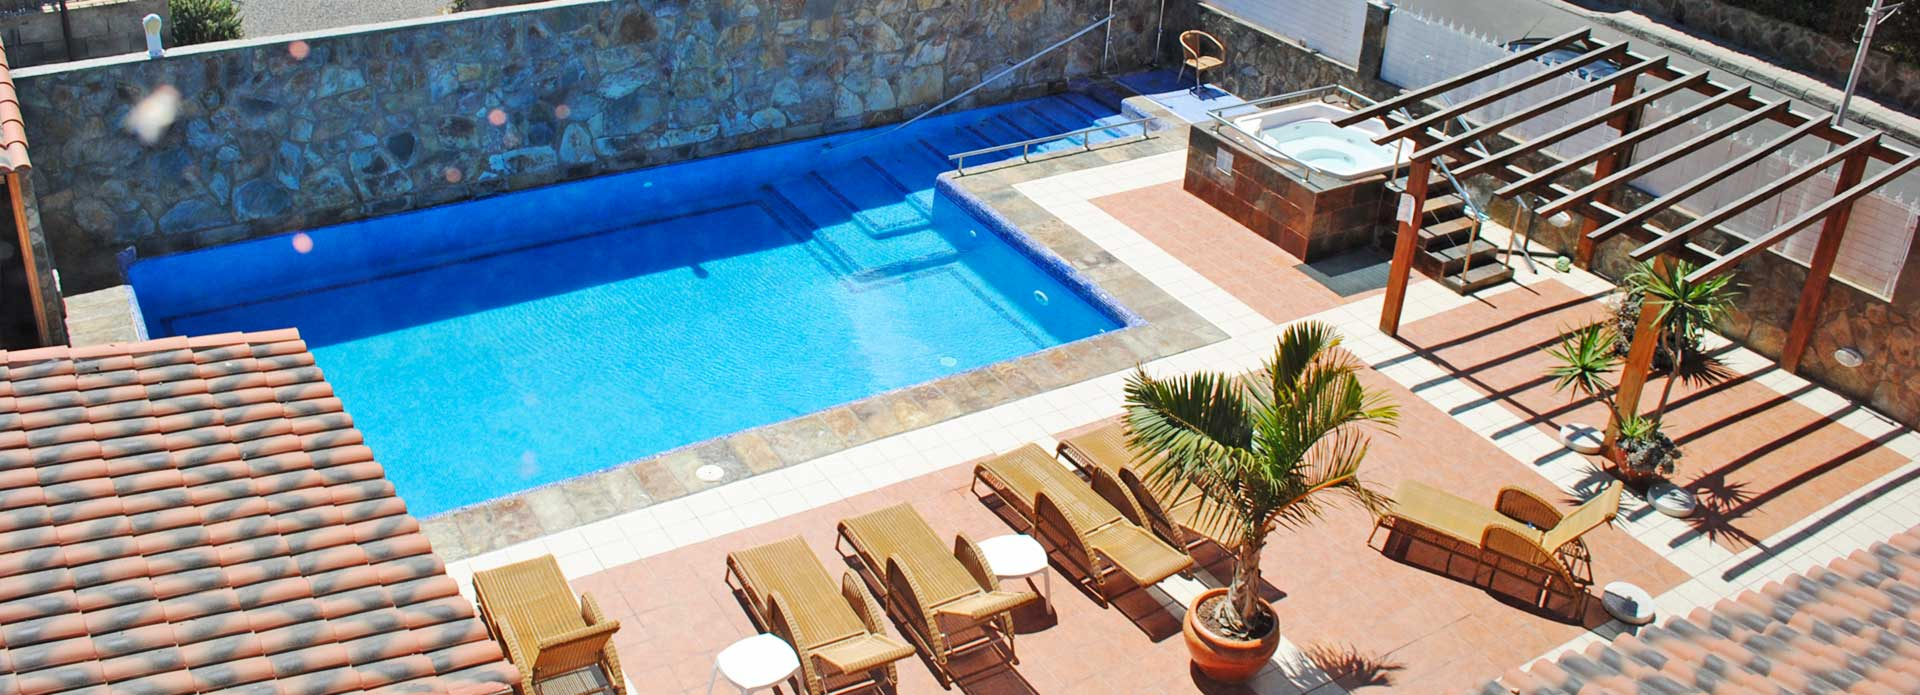 Hotel la aldea suites un peque o para so en un lugar nico for Piscina can drago precios 2017